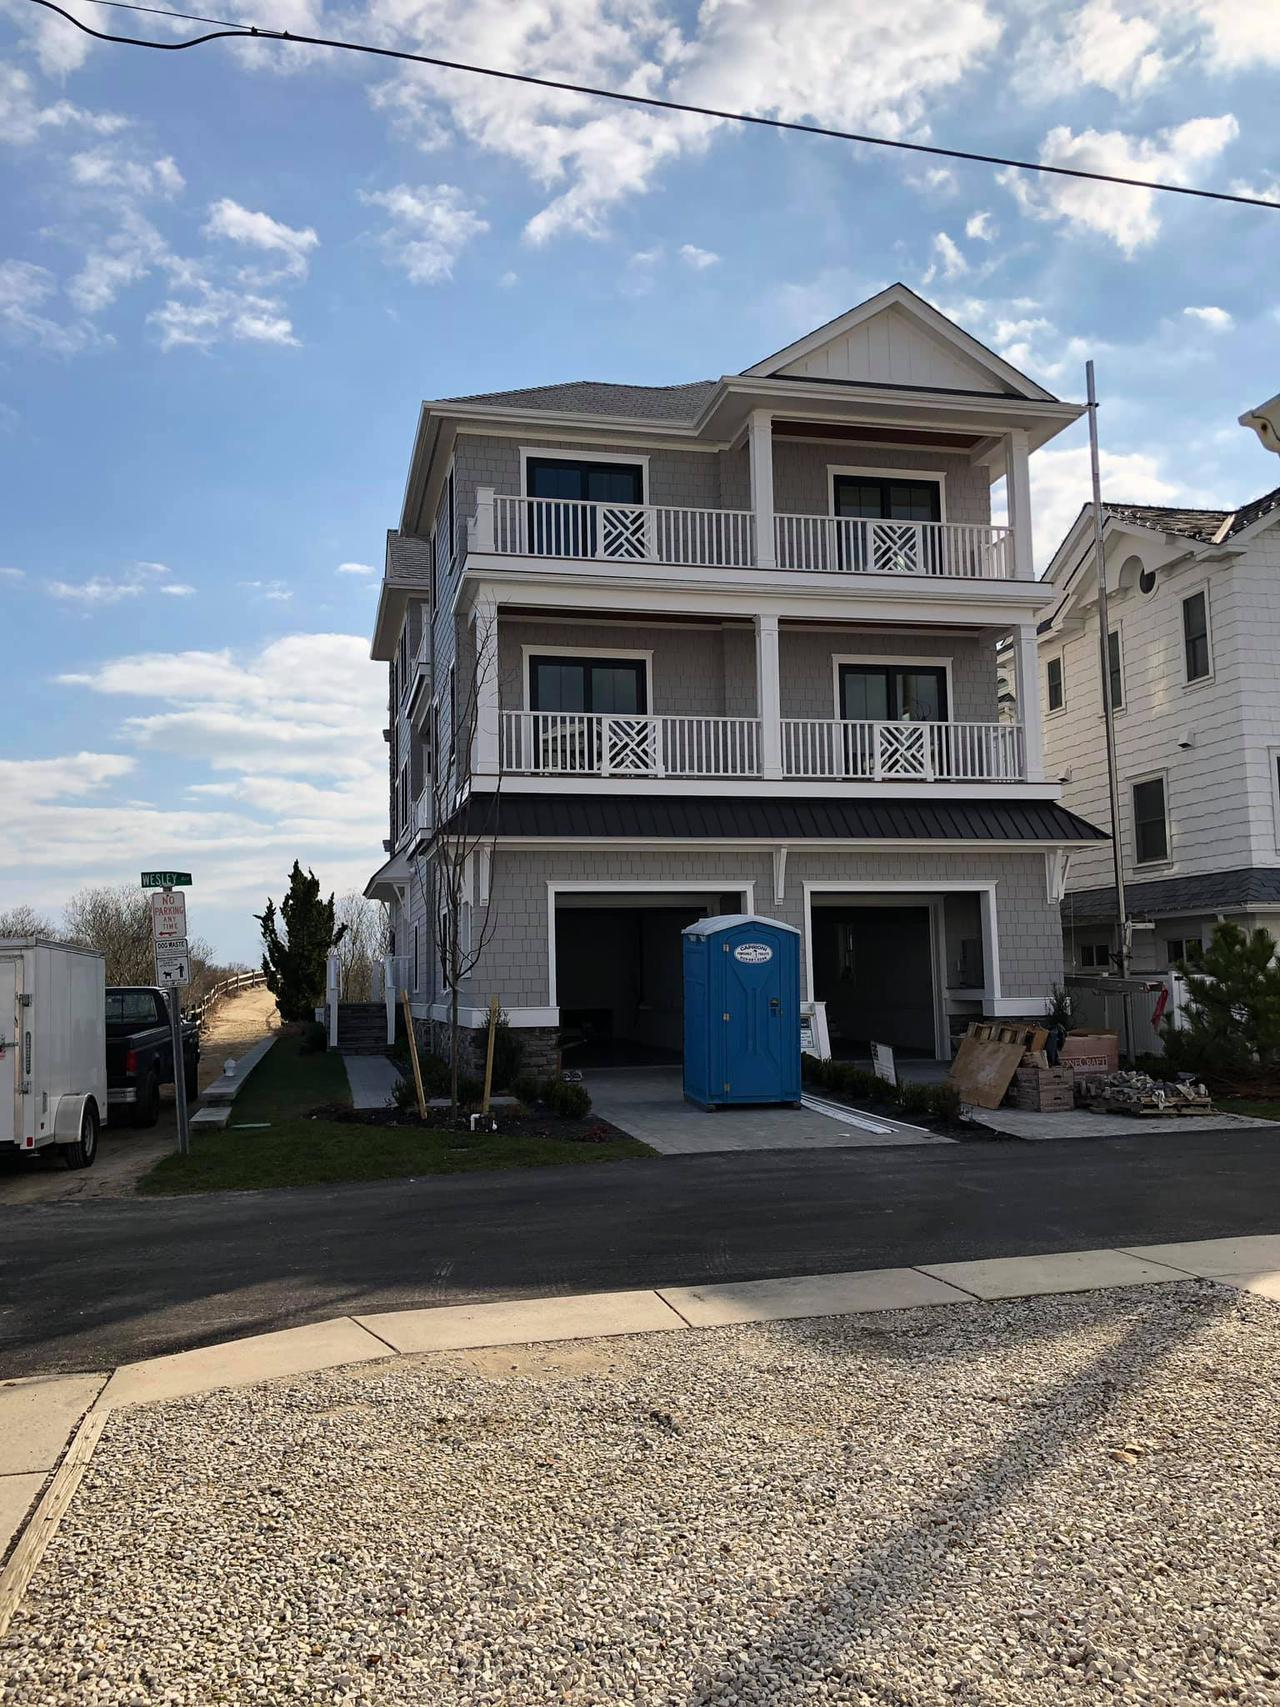 example of concrete work on a three story home by We Coat Concrete